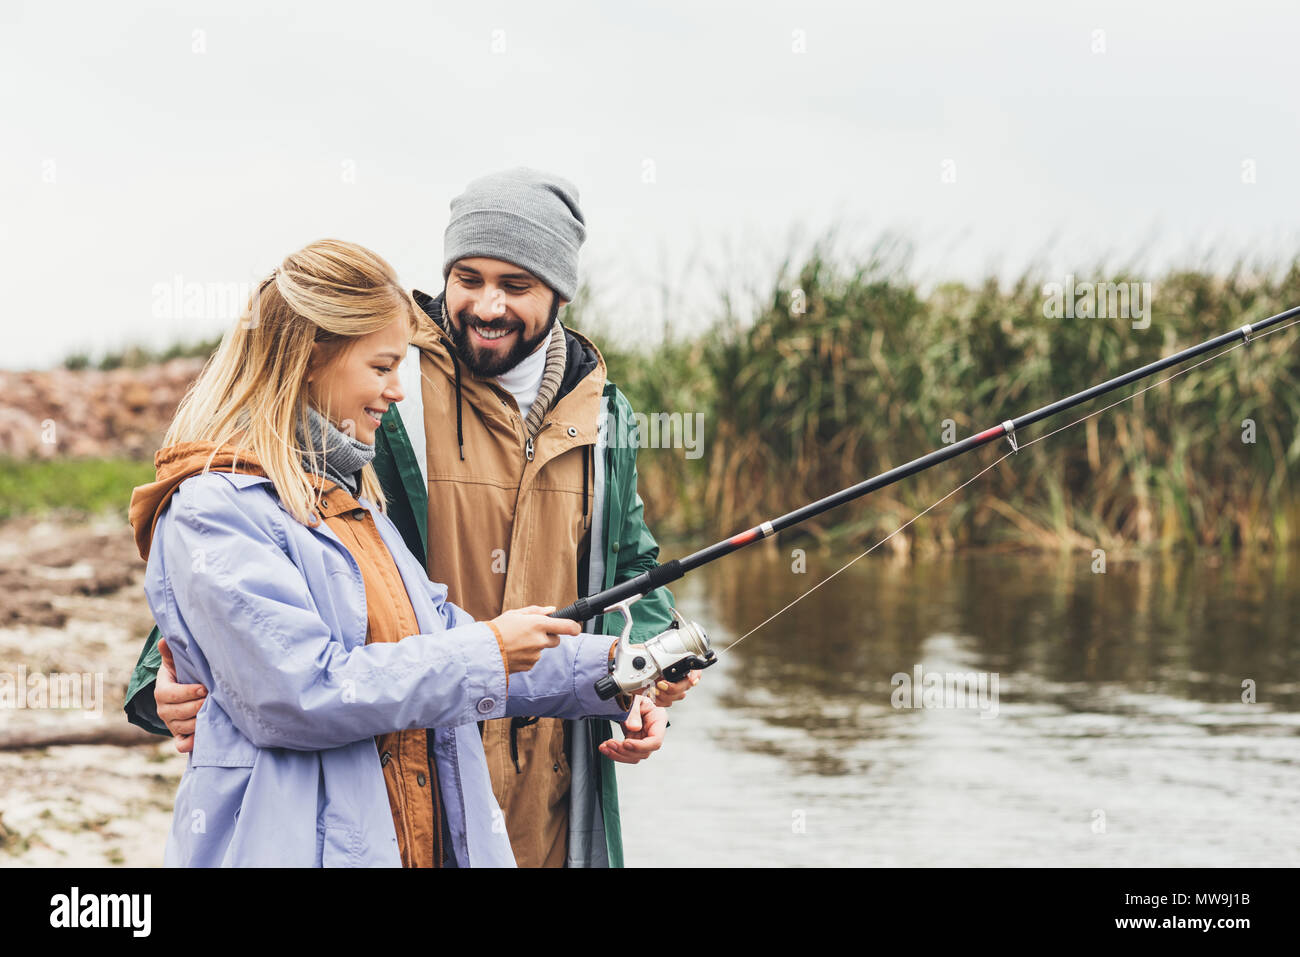 beautiful couple fishing together on cloudy day - Stock Image